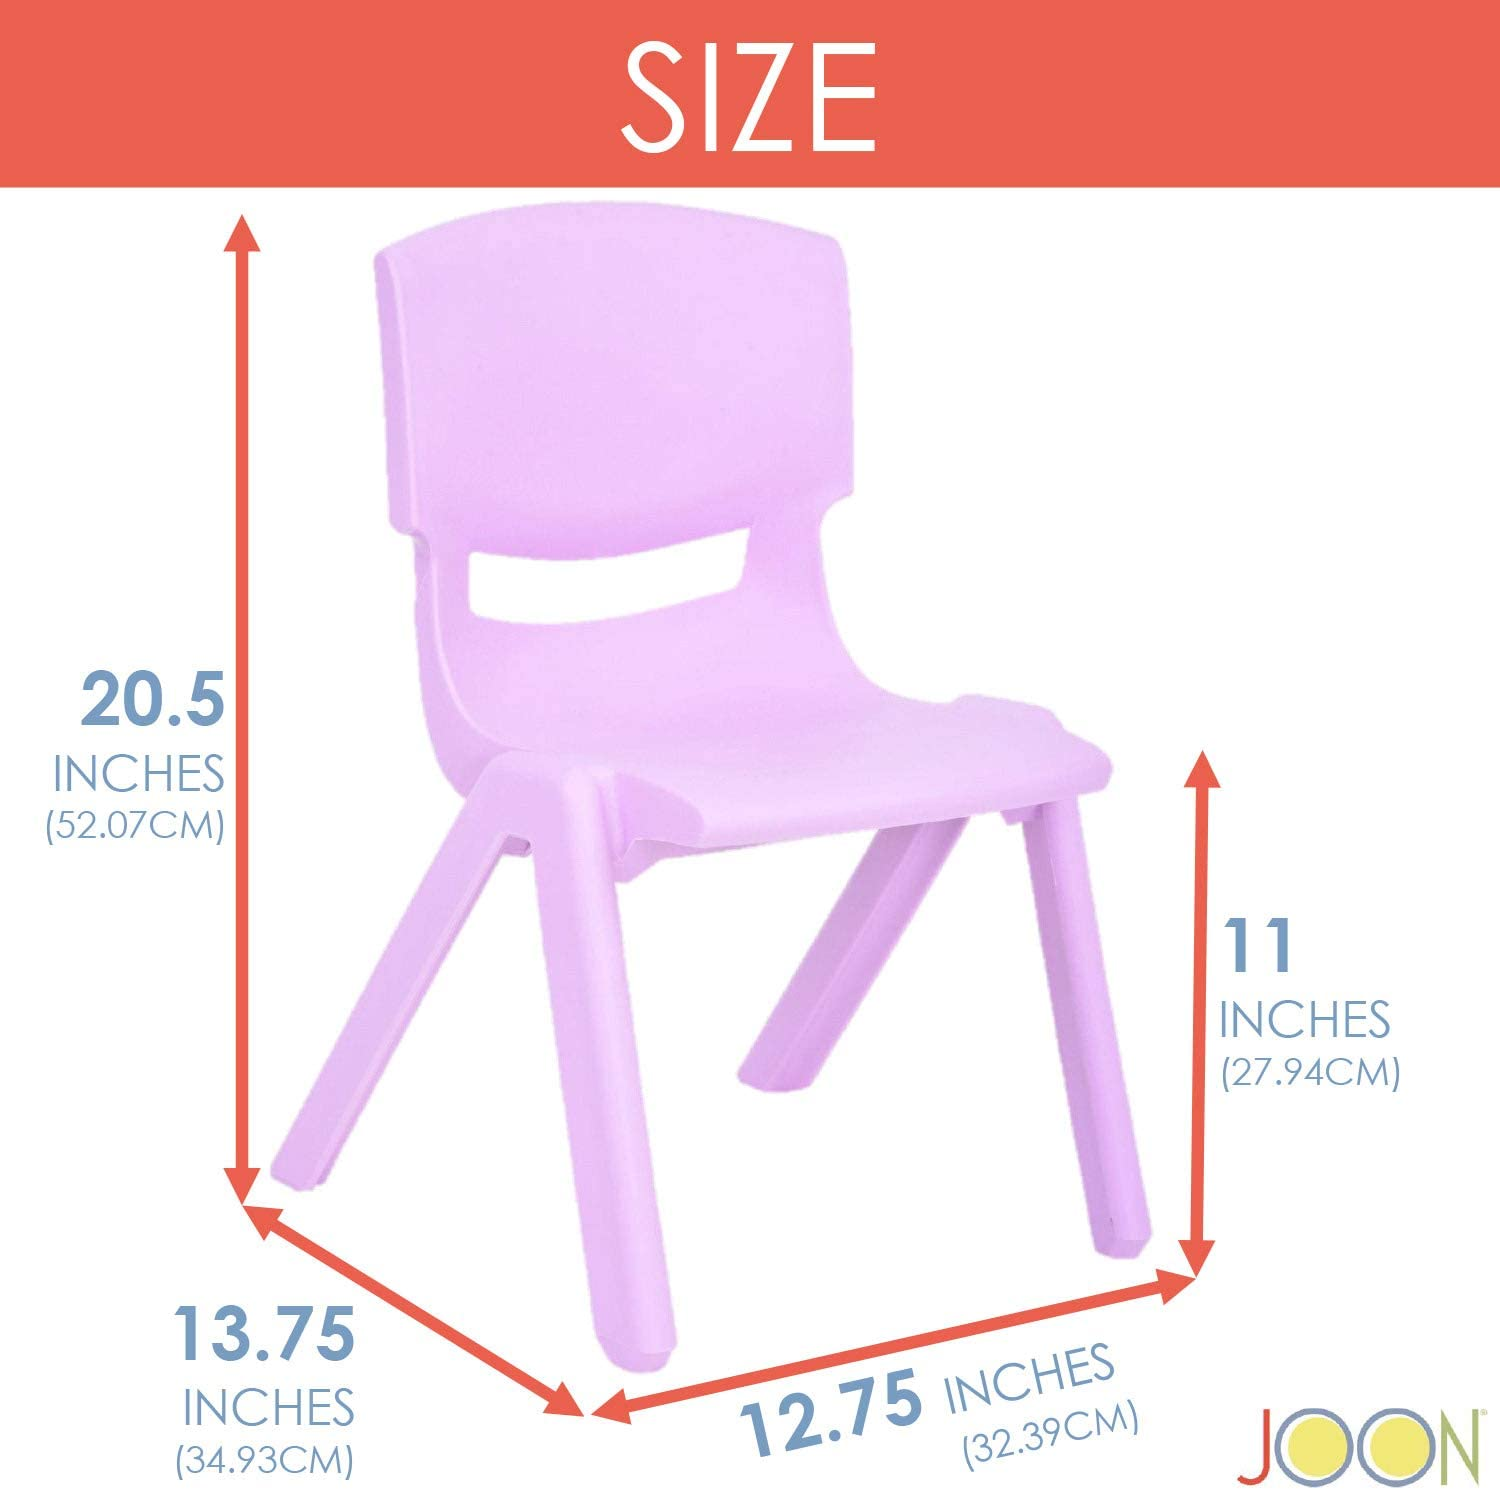 Schools Pink, The Perfect Chair for Playrooms 2-Pack 20.5x12.75X11 Inches JOON Stackable Plastic Kids Learning Chairs Daycares and Home